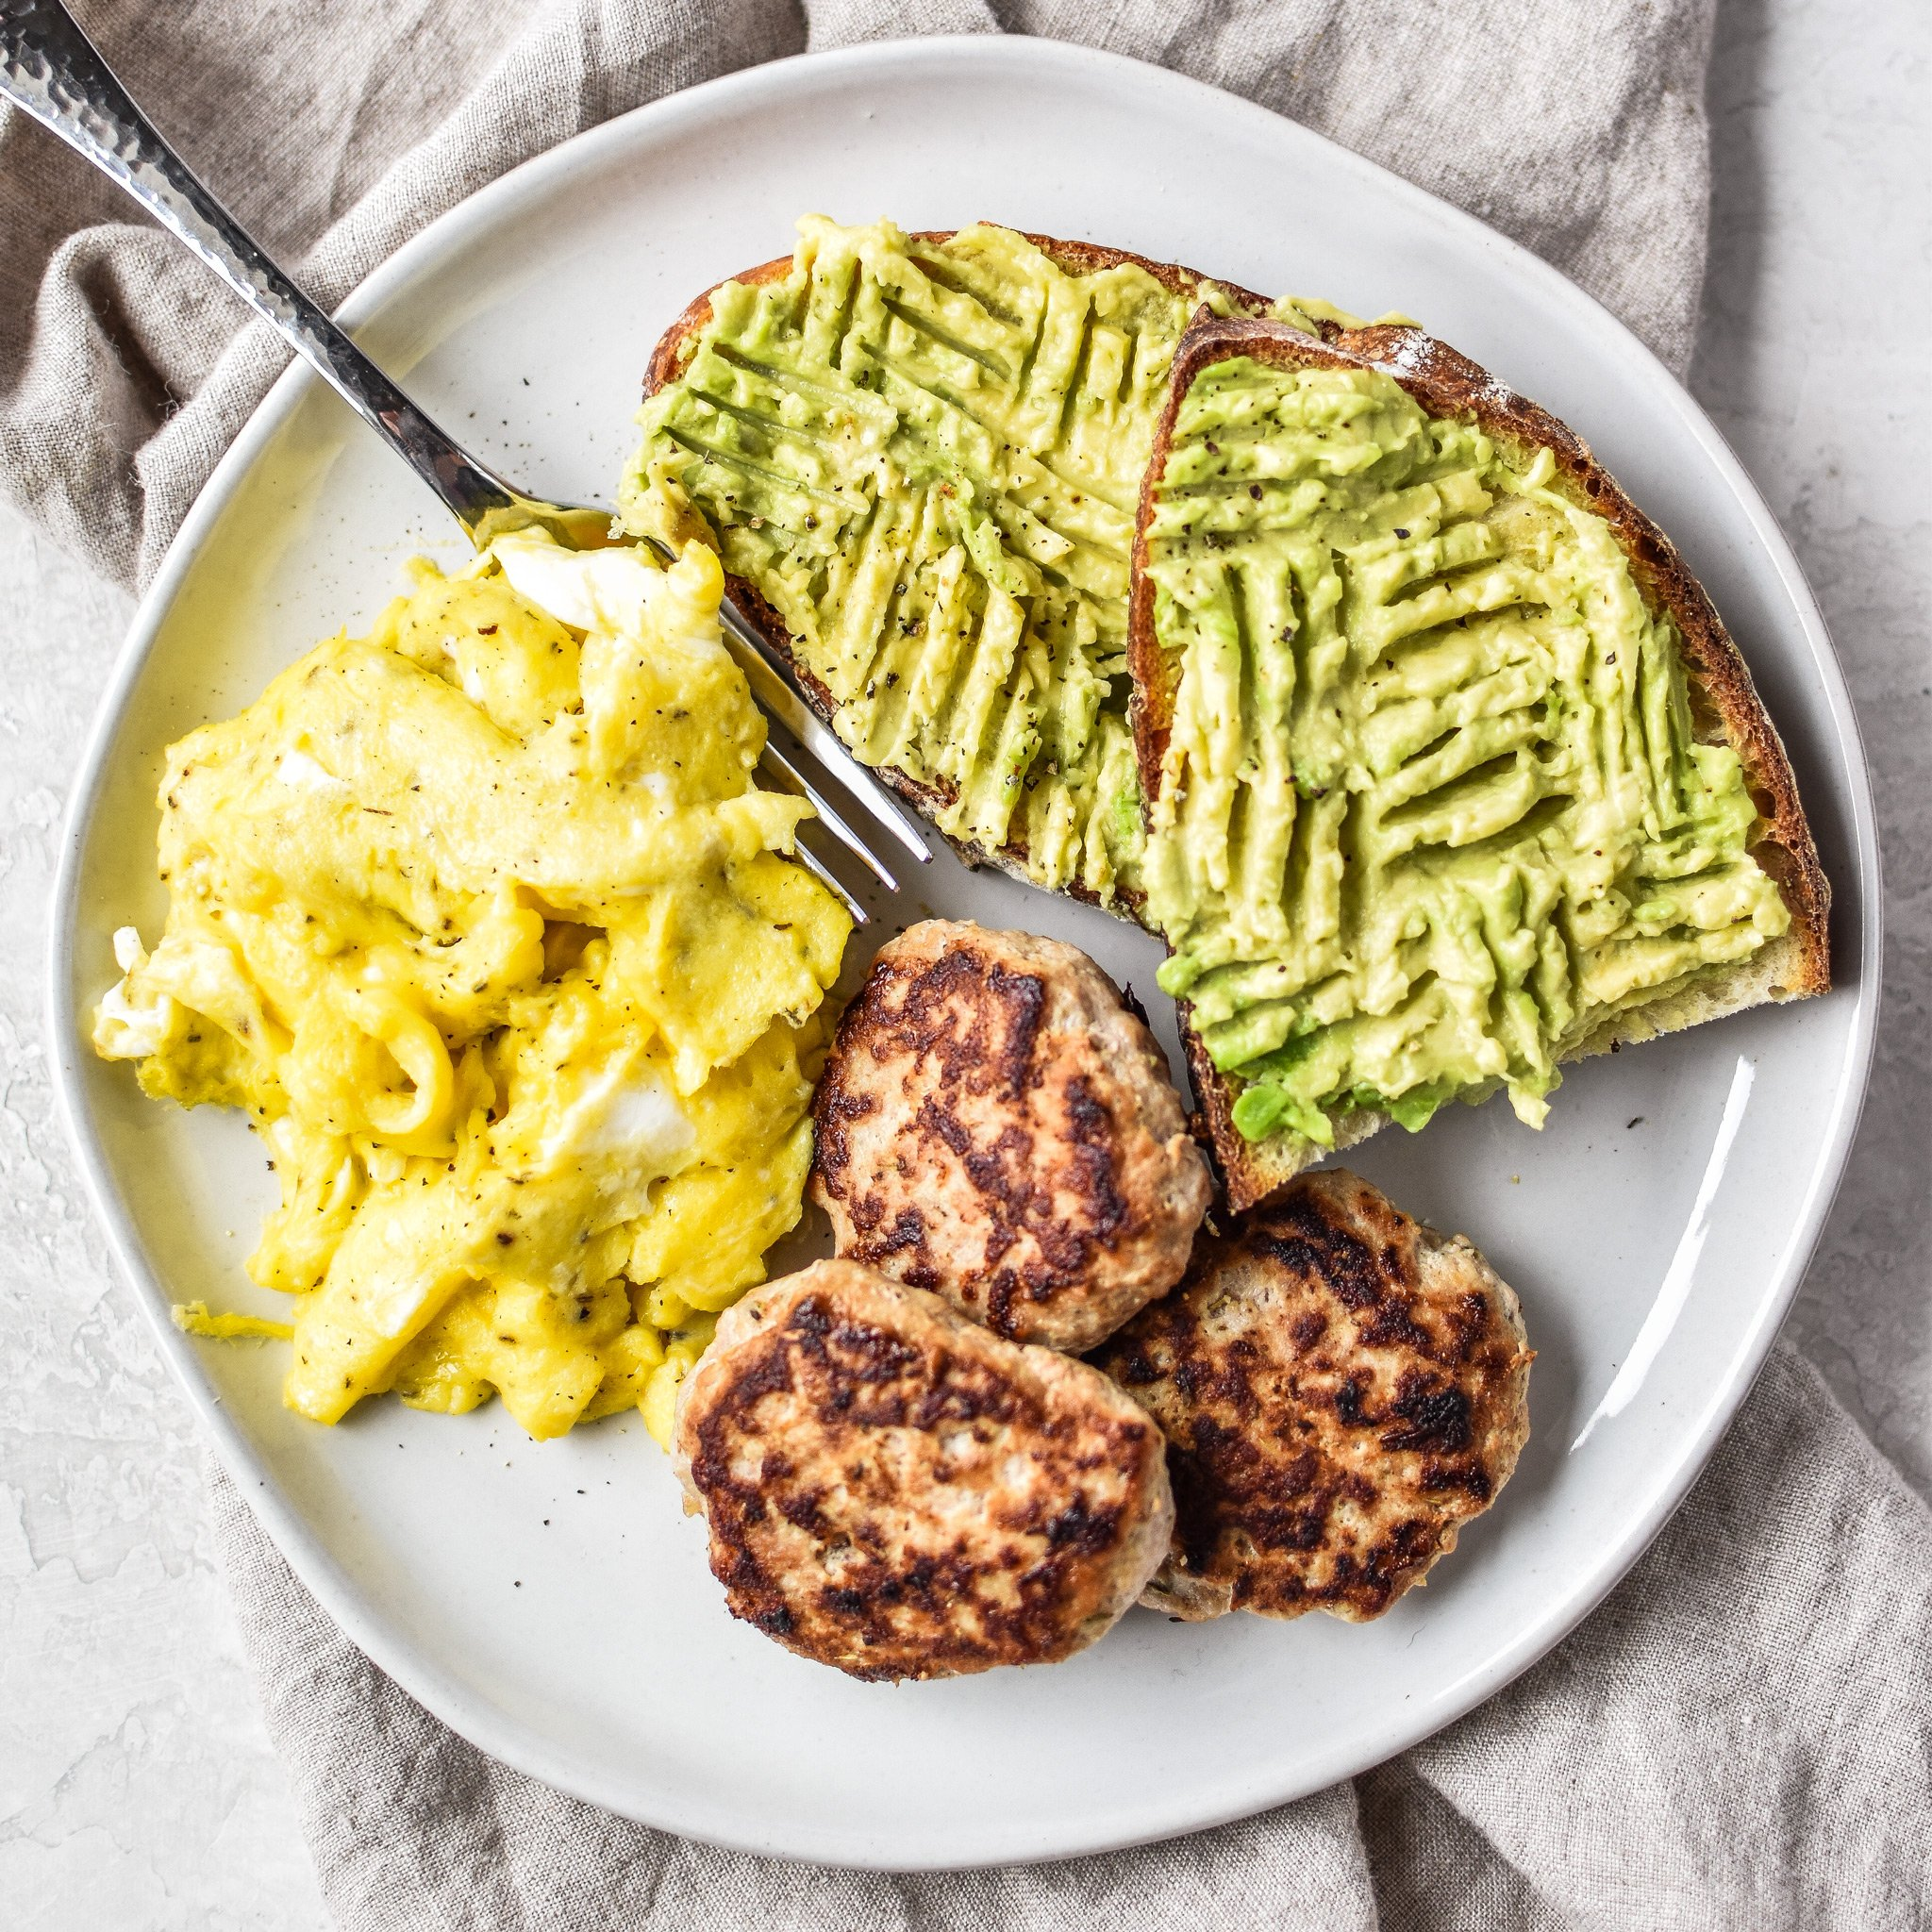 Plate of ground turkey breakfast sausage patties, scrambled eggs and avocado toast.